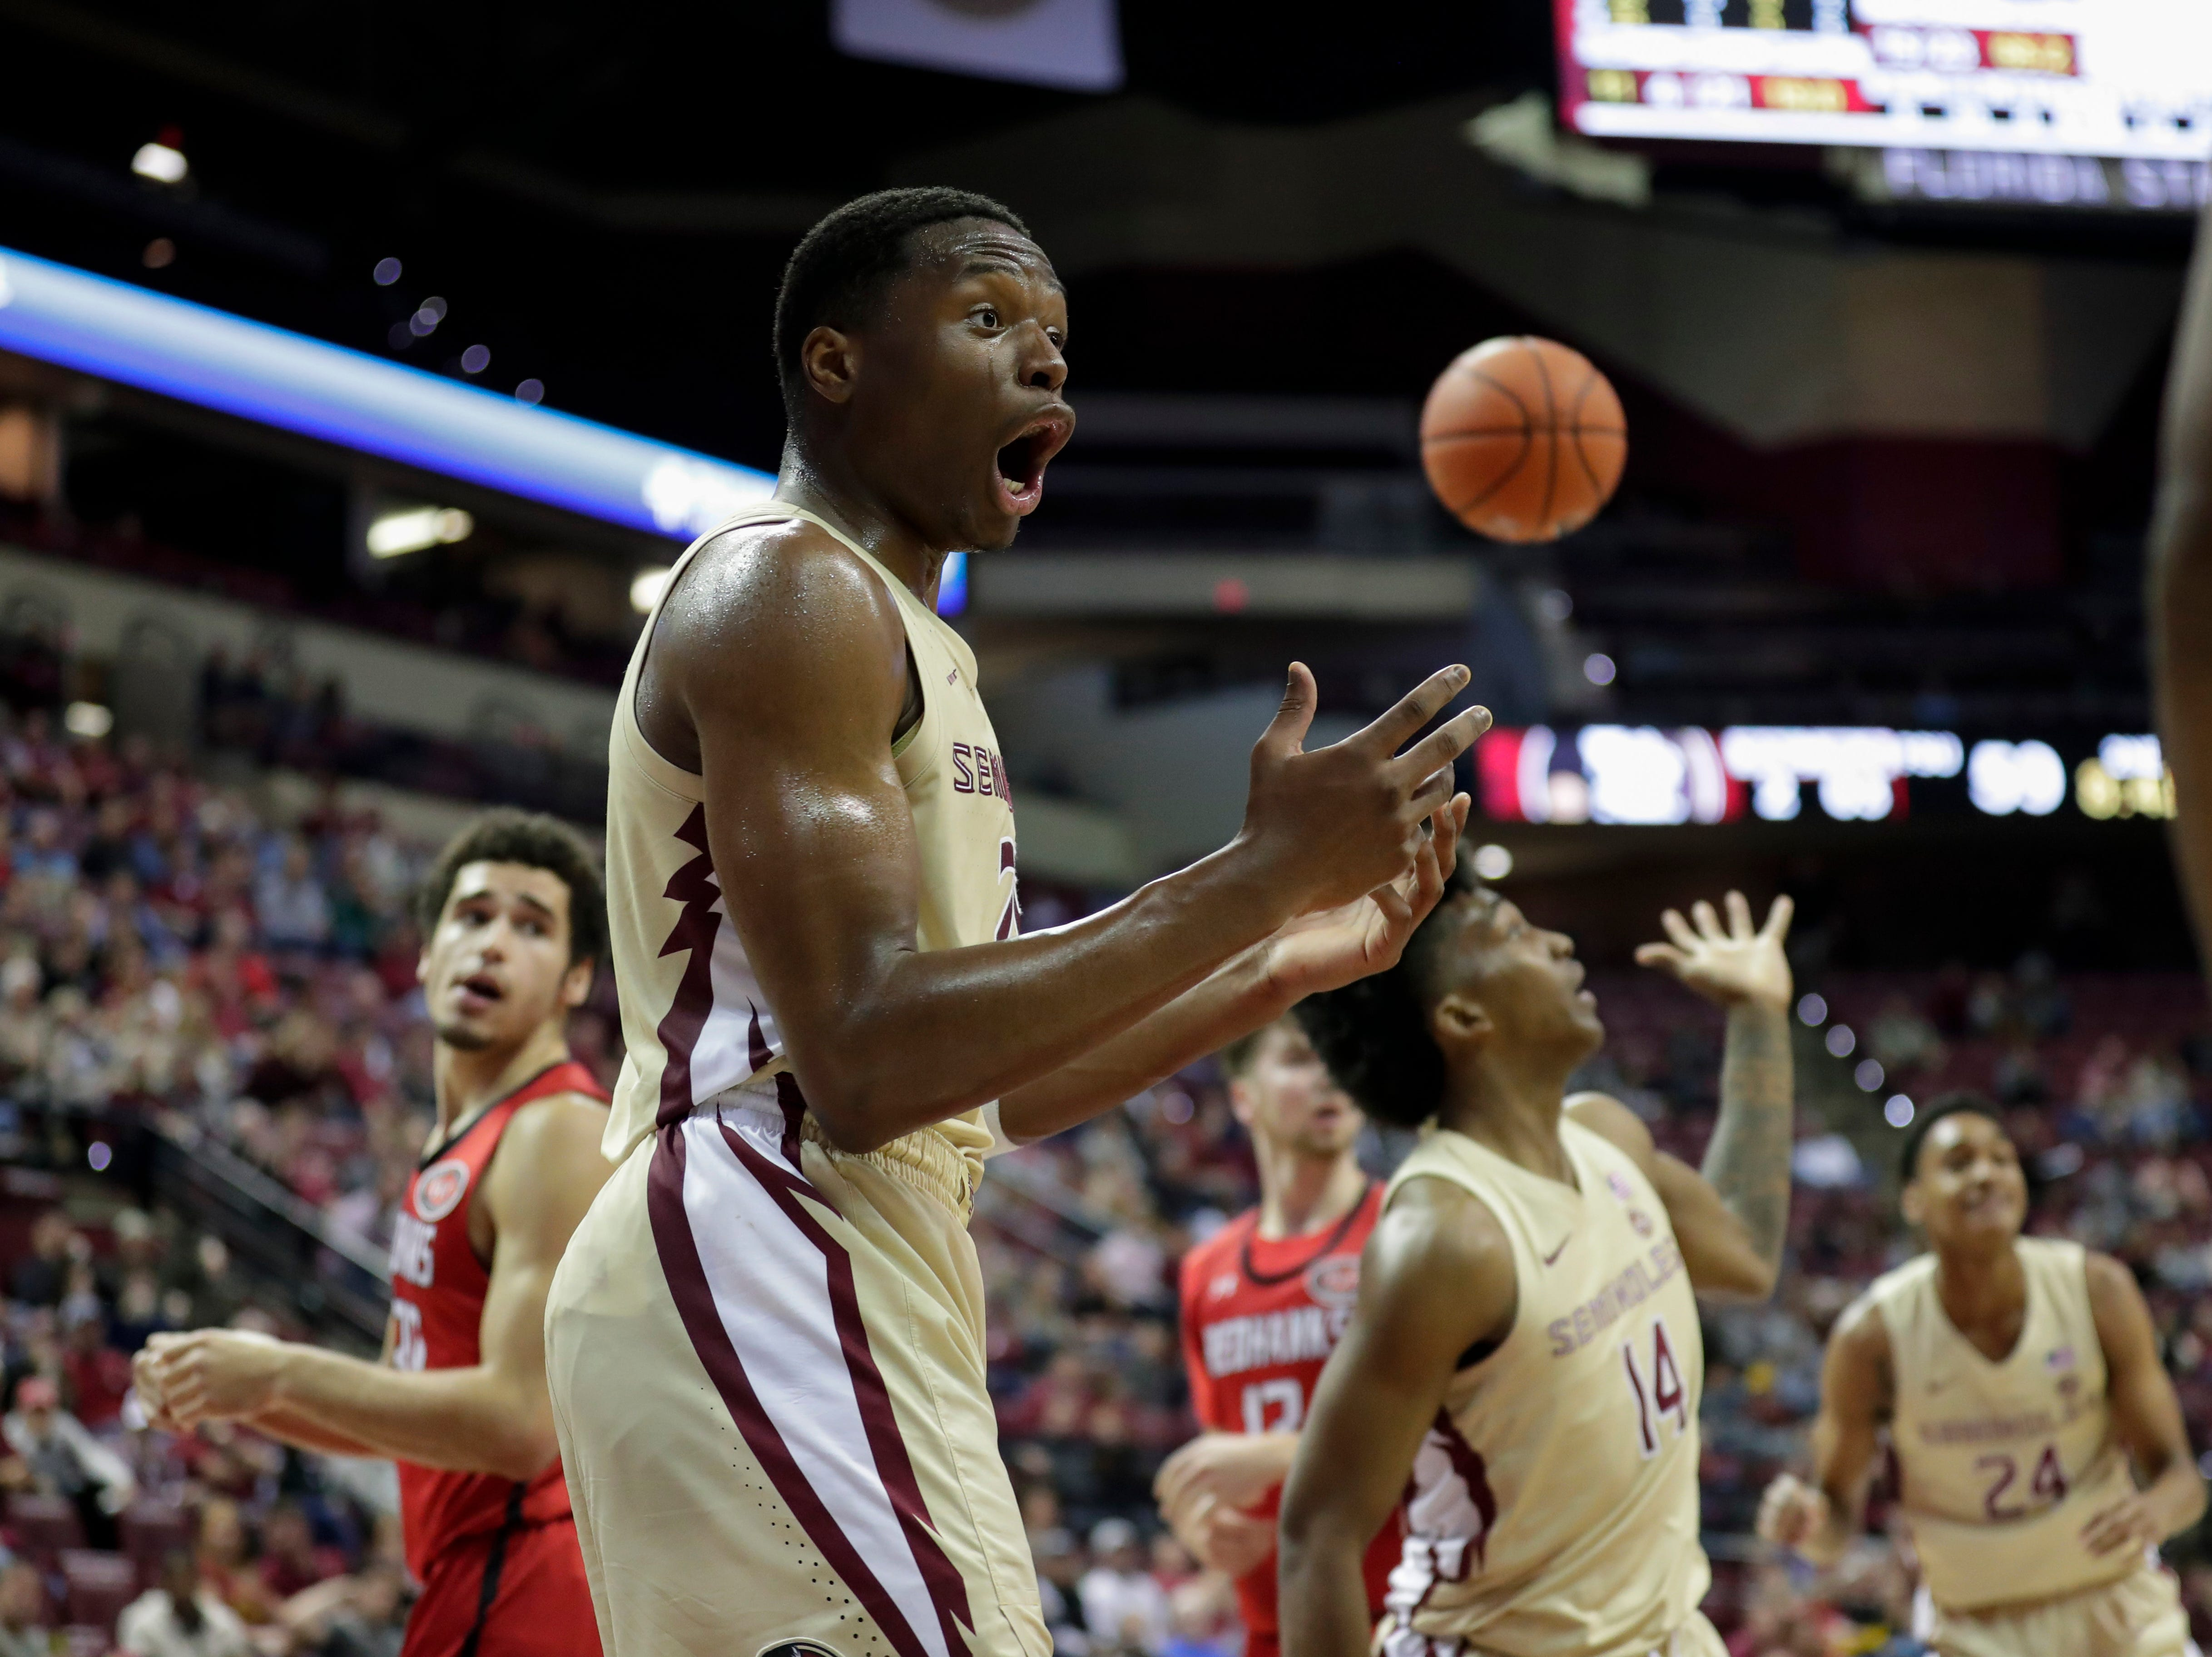 Florida State Seminoles forward Mfiondu Kabengele (25) reacts to a call during a game between Florida State University and Southeast Missouri State University at the Donald L. Tucker Civic Center Monday, Dec. 17, 2018.